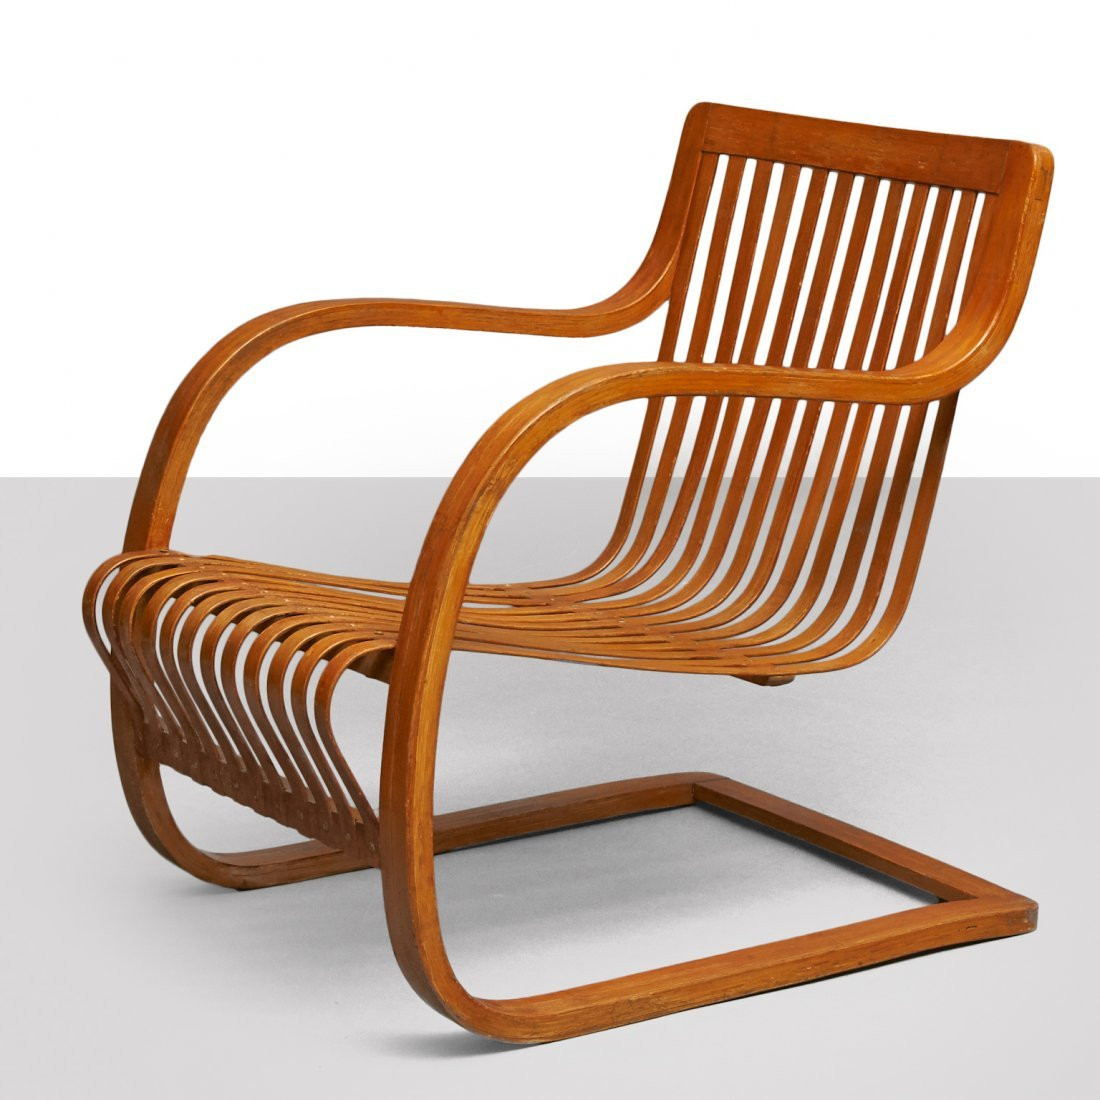 Charlotte Perriand, Lounge Chairs - 2